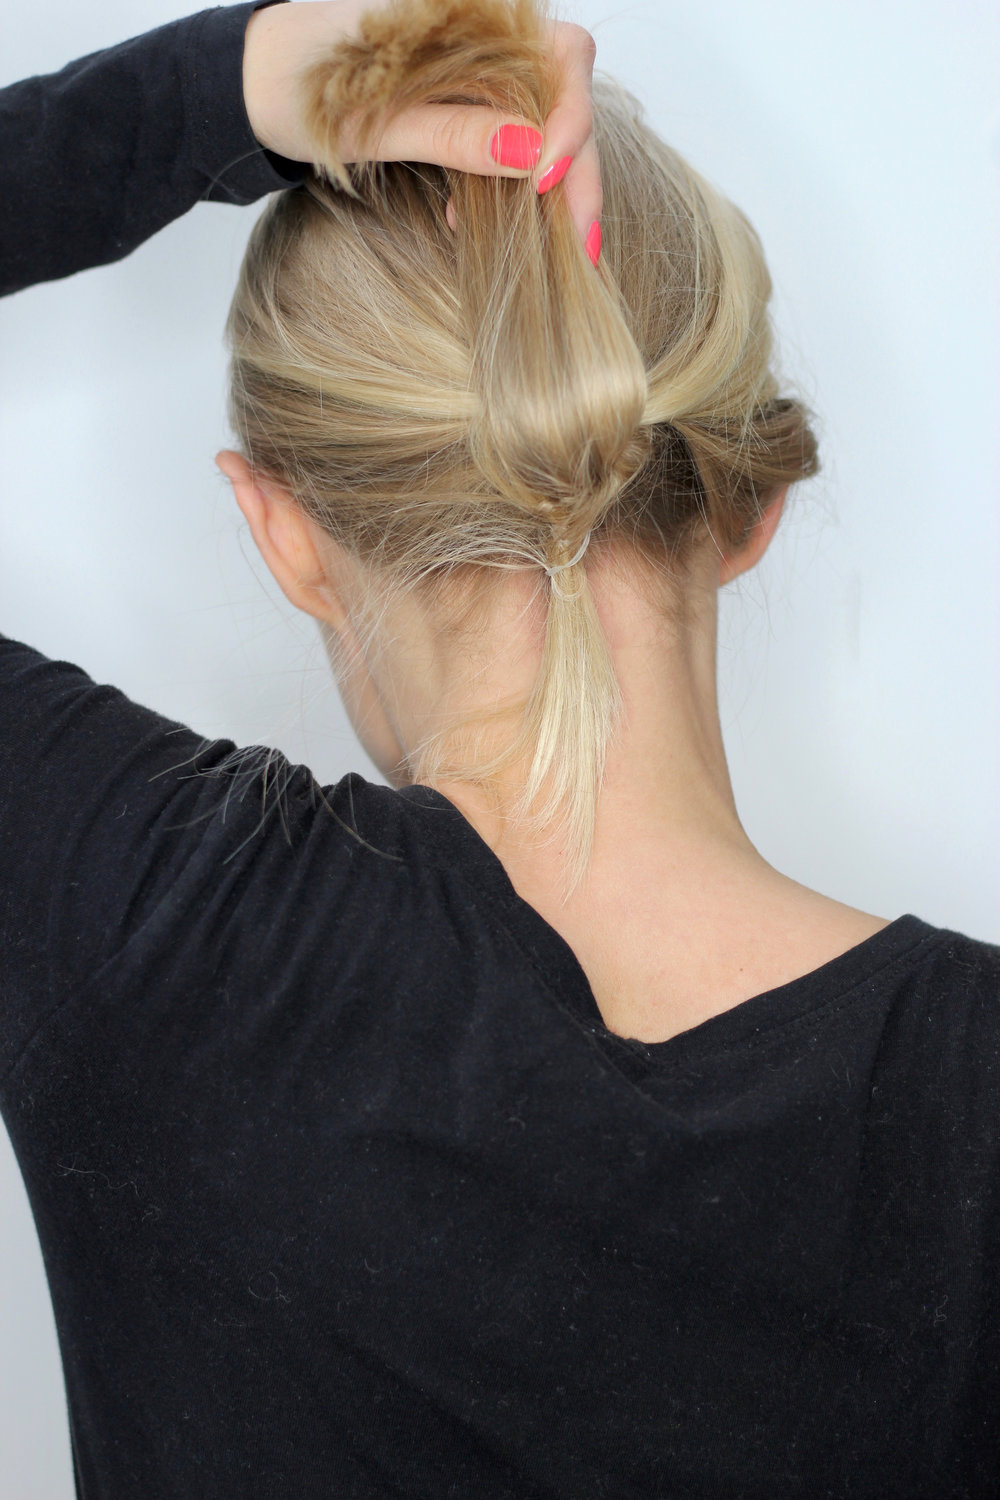 STEP 4 - Wrap the ends of the knot around the ponytail and tie it up with a small rubber hair tie beneath it.